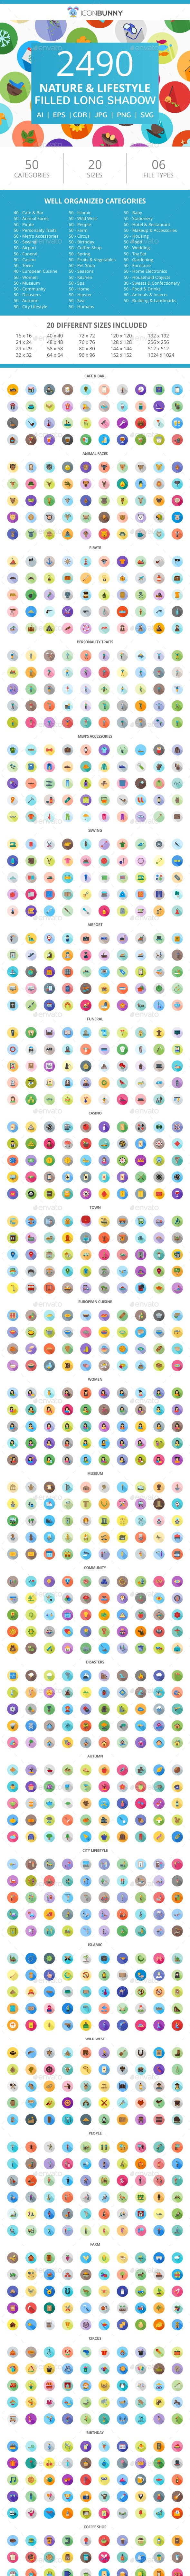 2490 Nature & Lifestyle Flat Long Shadow Icons - Icons